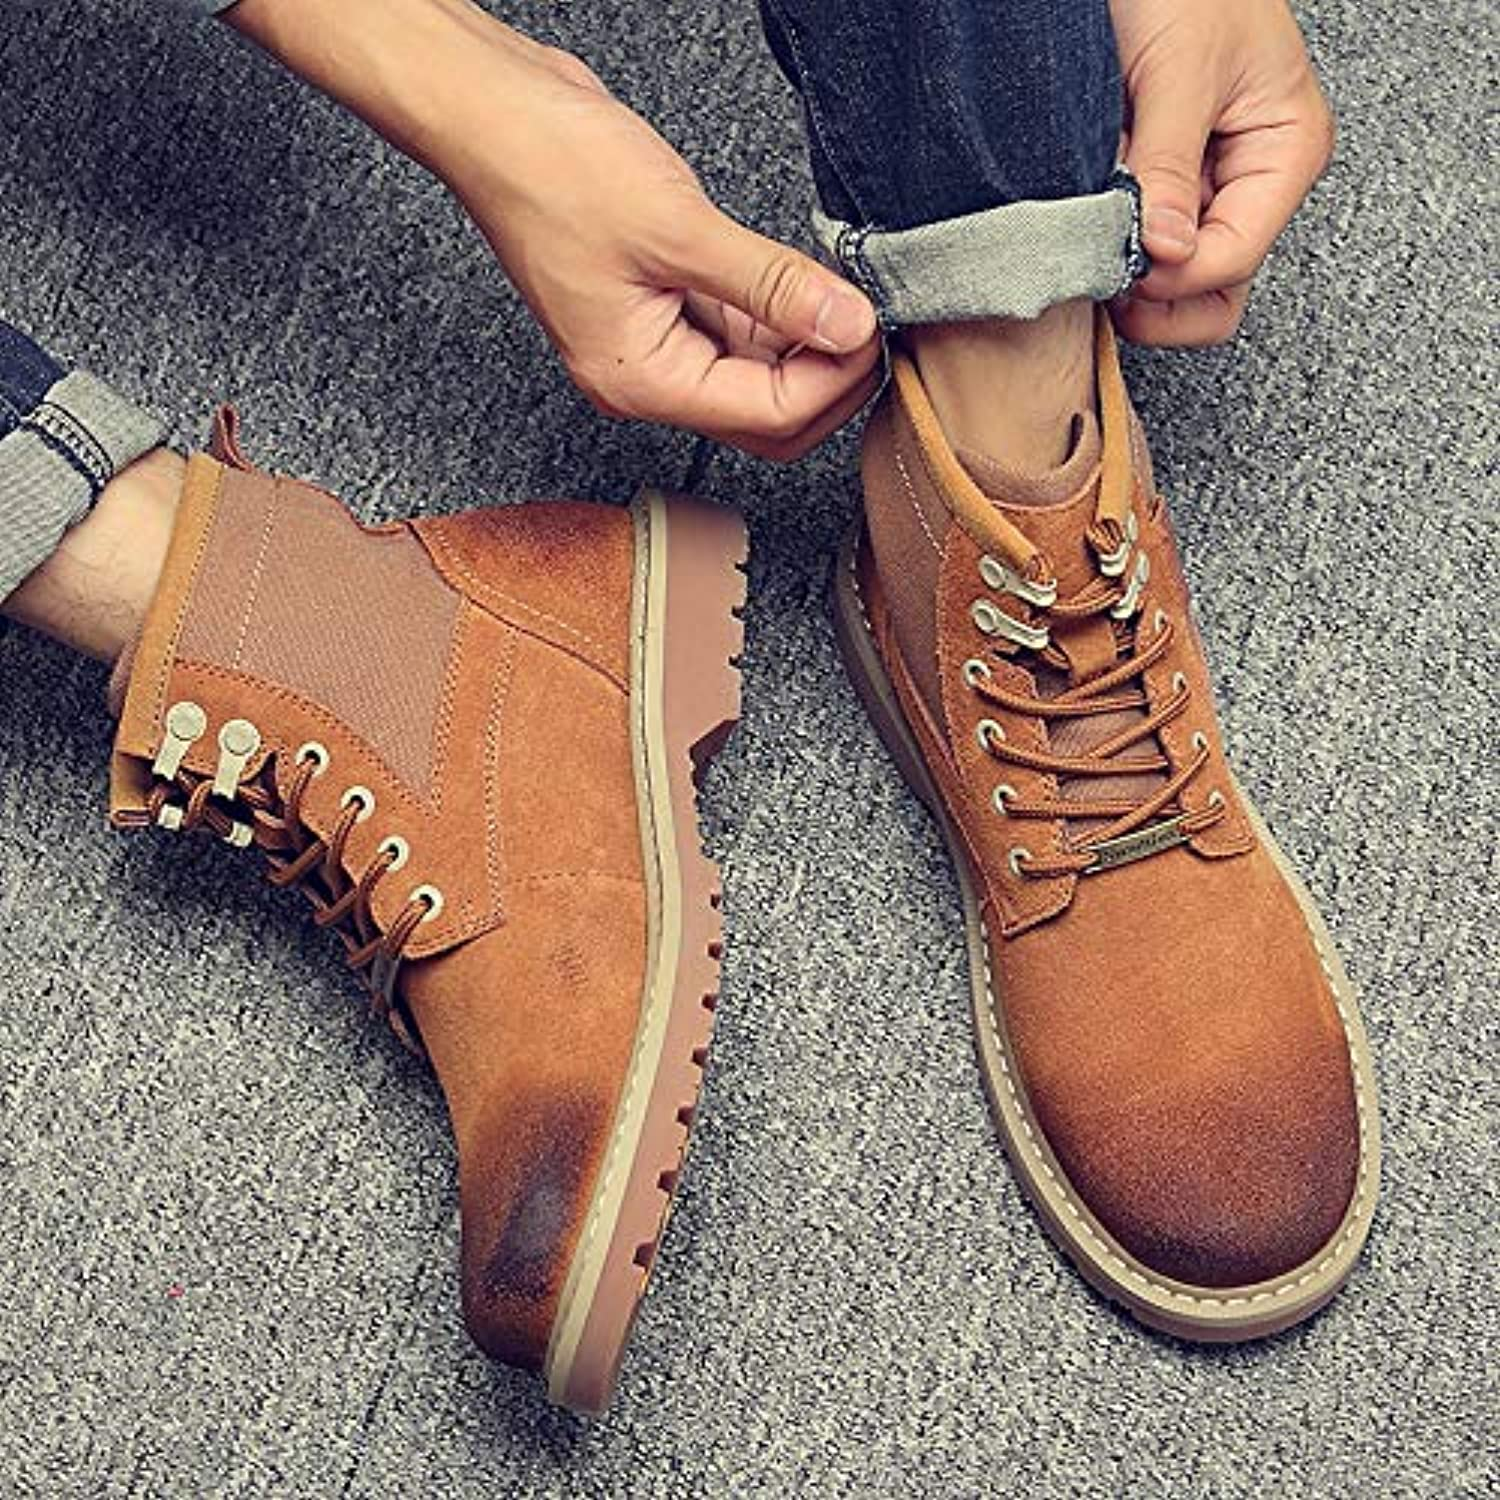 Shukun Men's boots Autumn And Winter Martin Boots Men'S Pu Boots Boots shoes Wild High To Help Desert Boots Men'S shoes